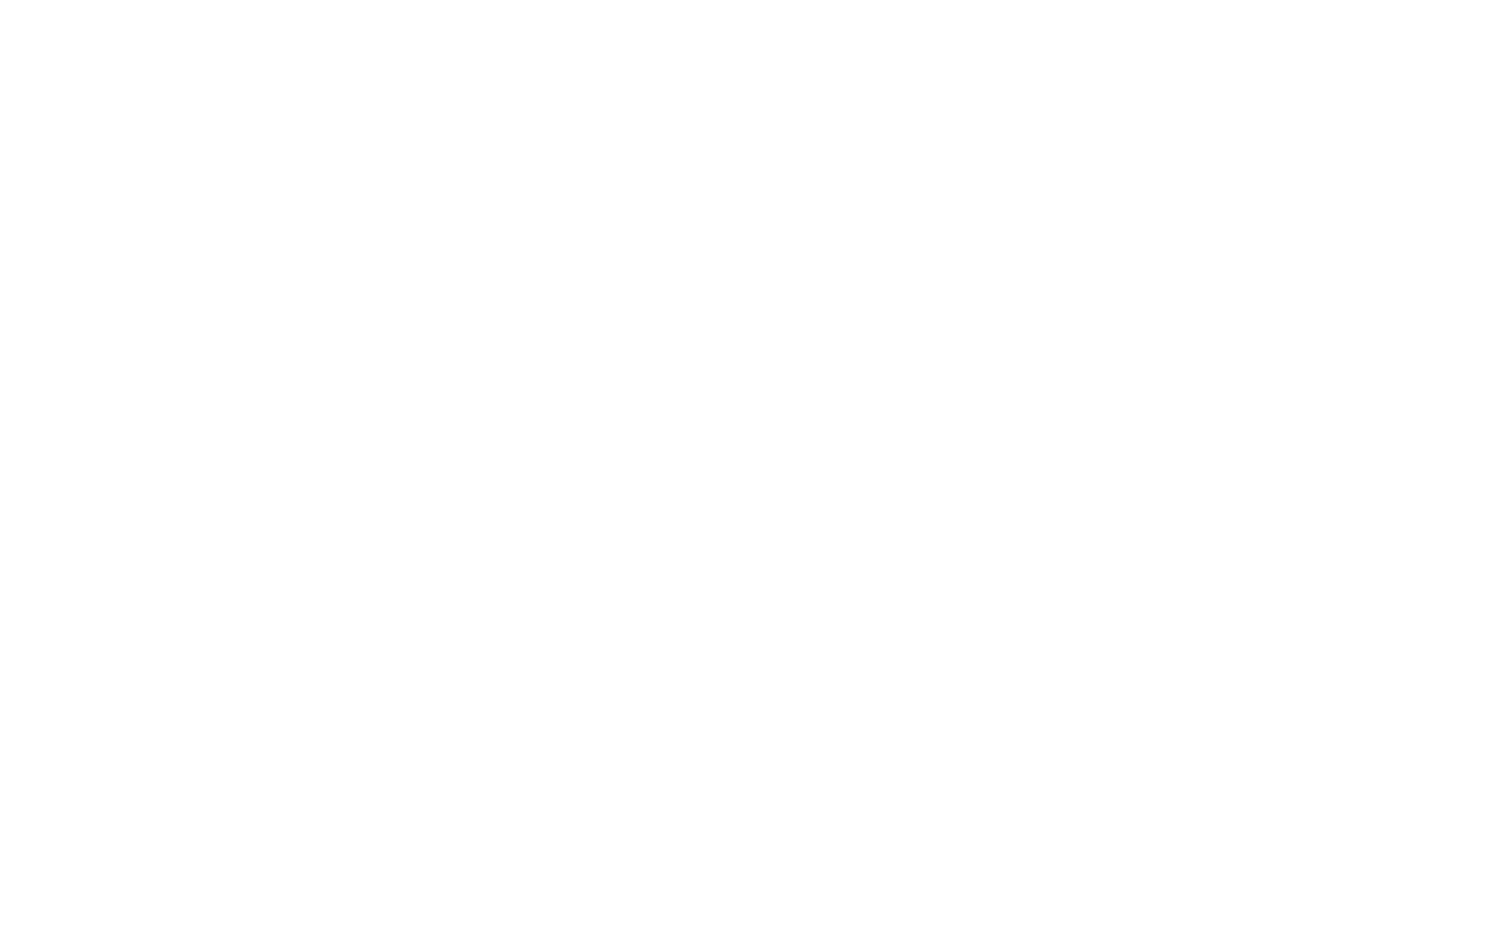 The Centre of Body & Mind